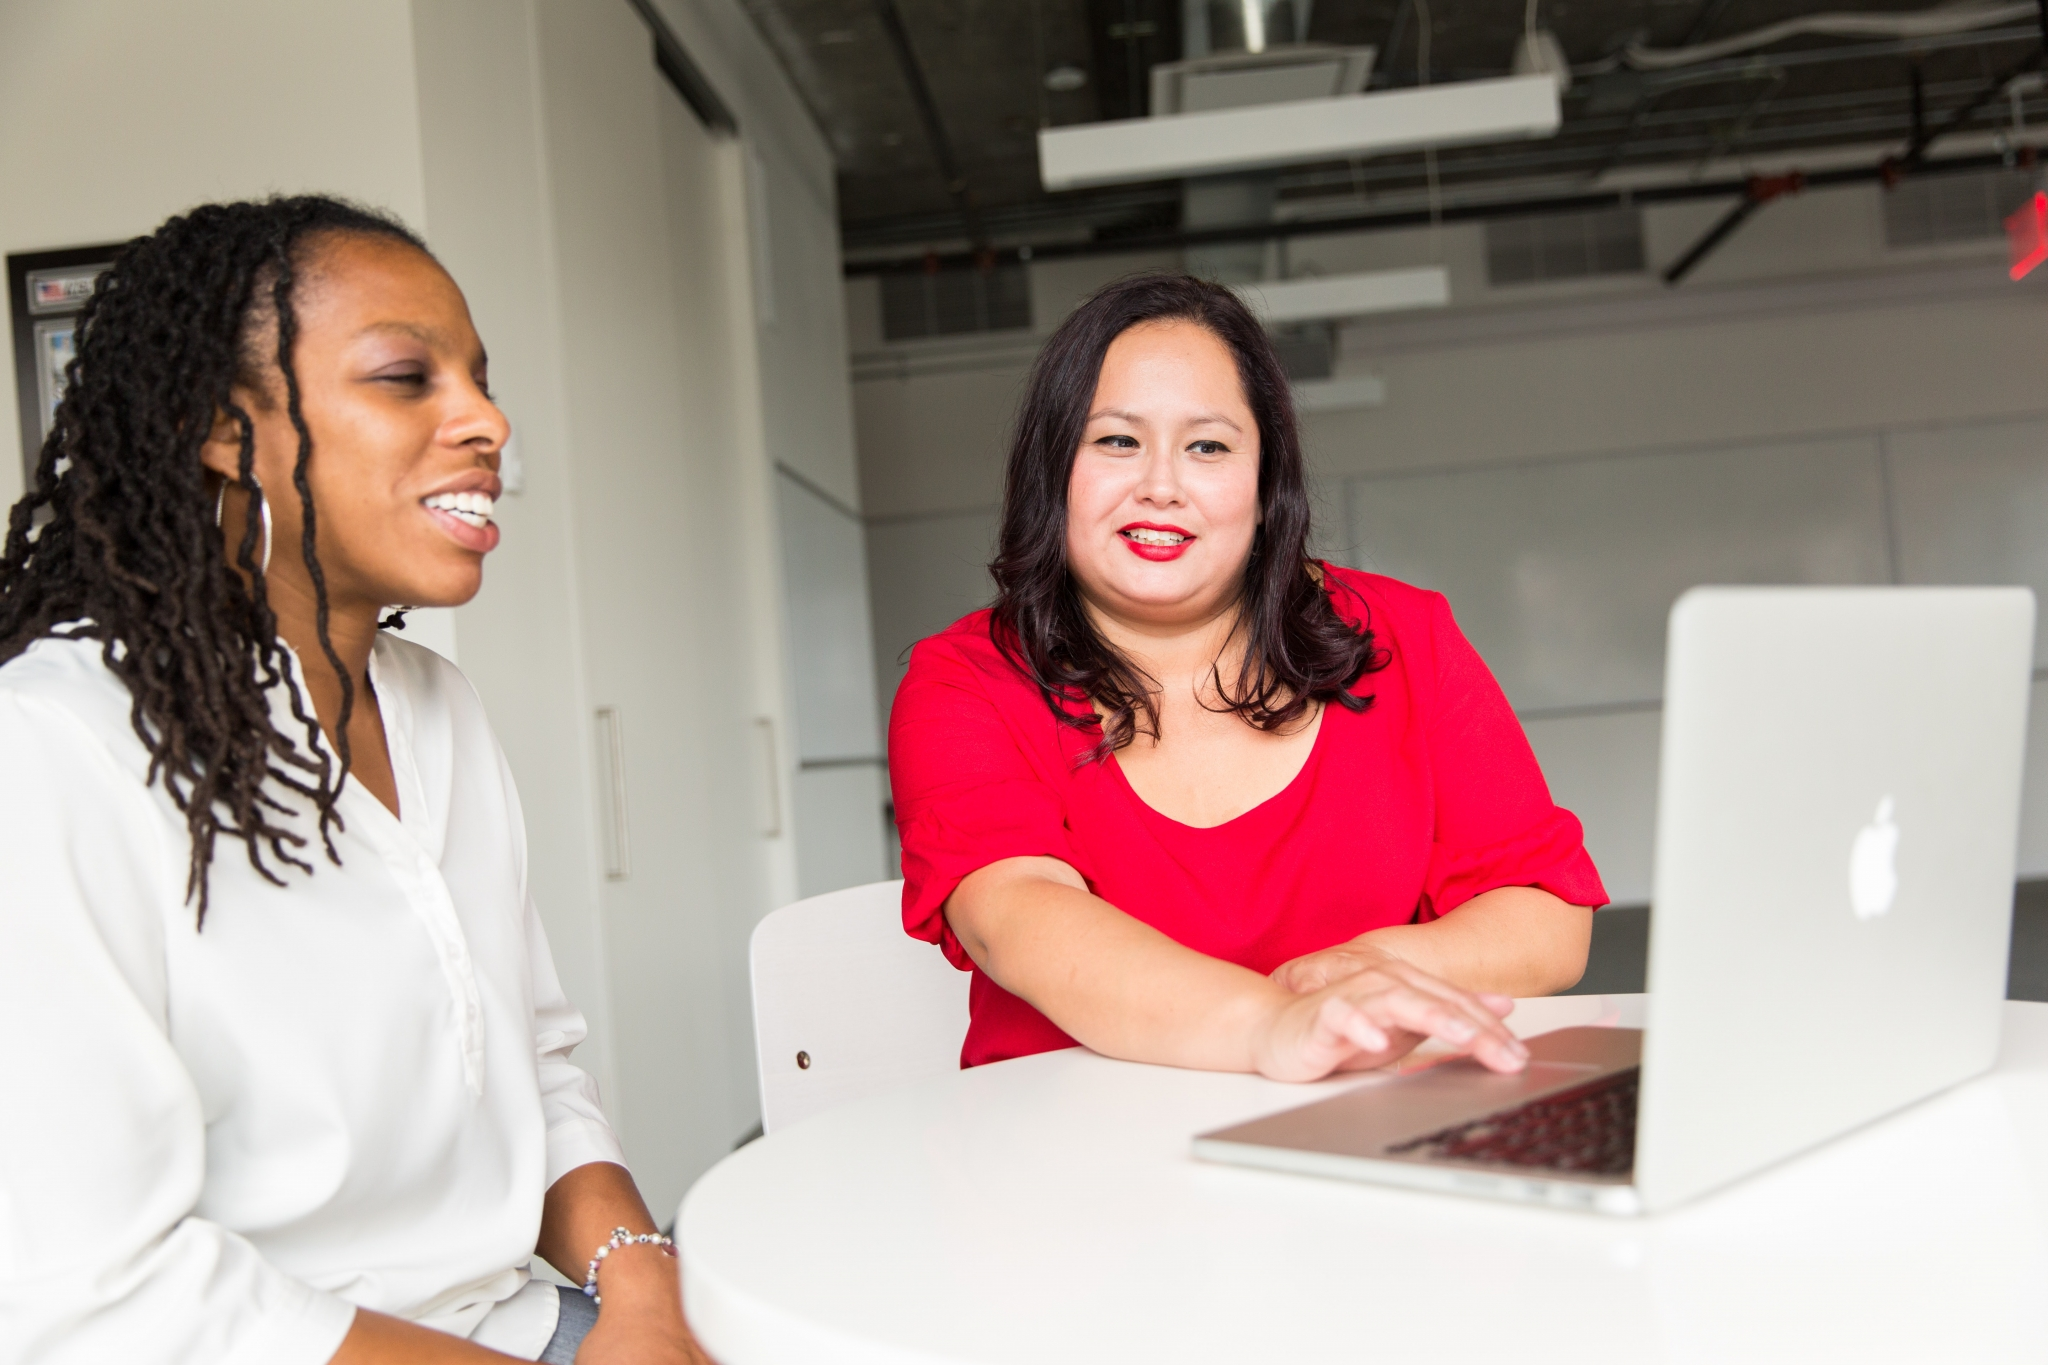 How to Setup Up Mentor/Mentee Relationships in the Office